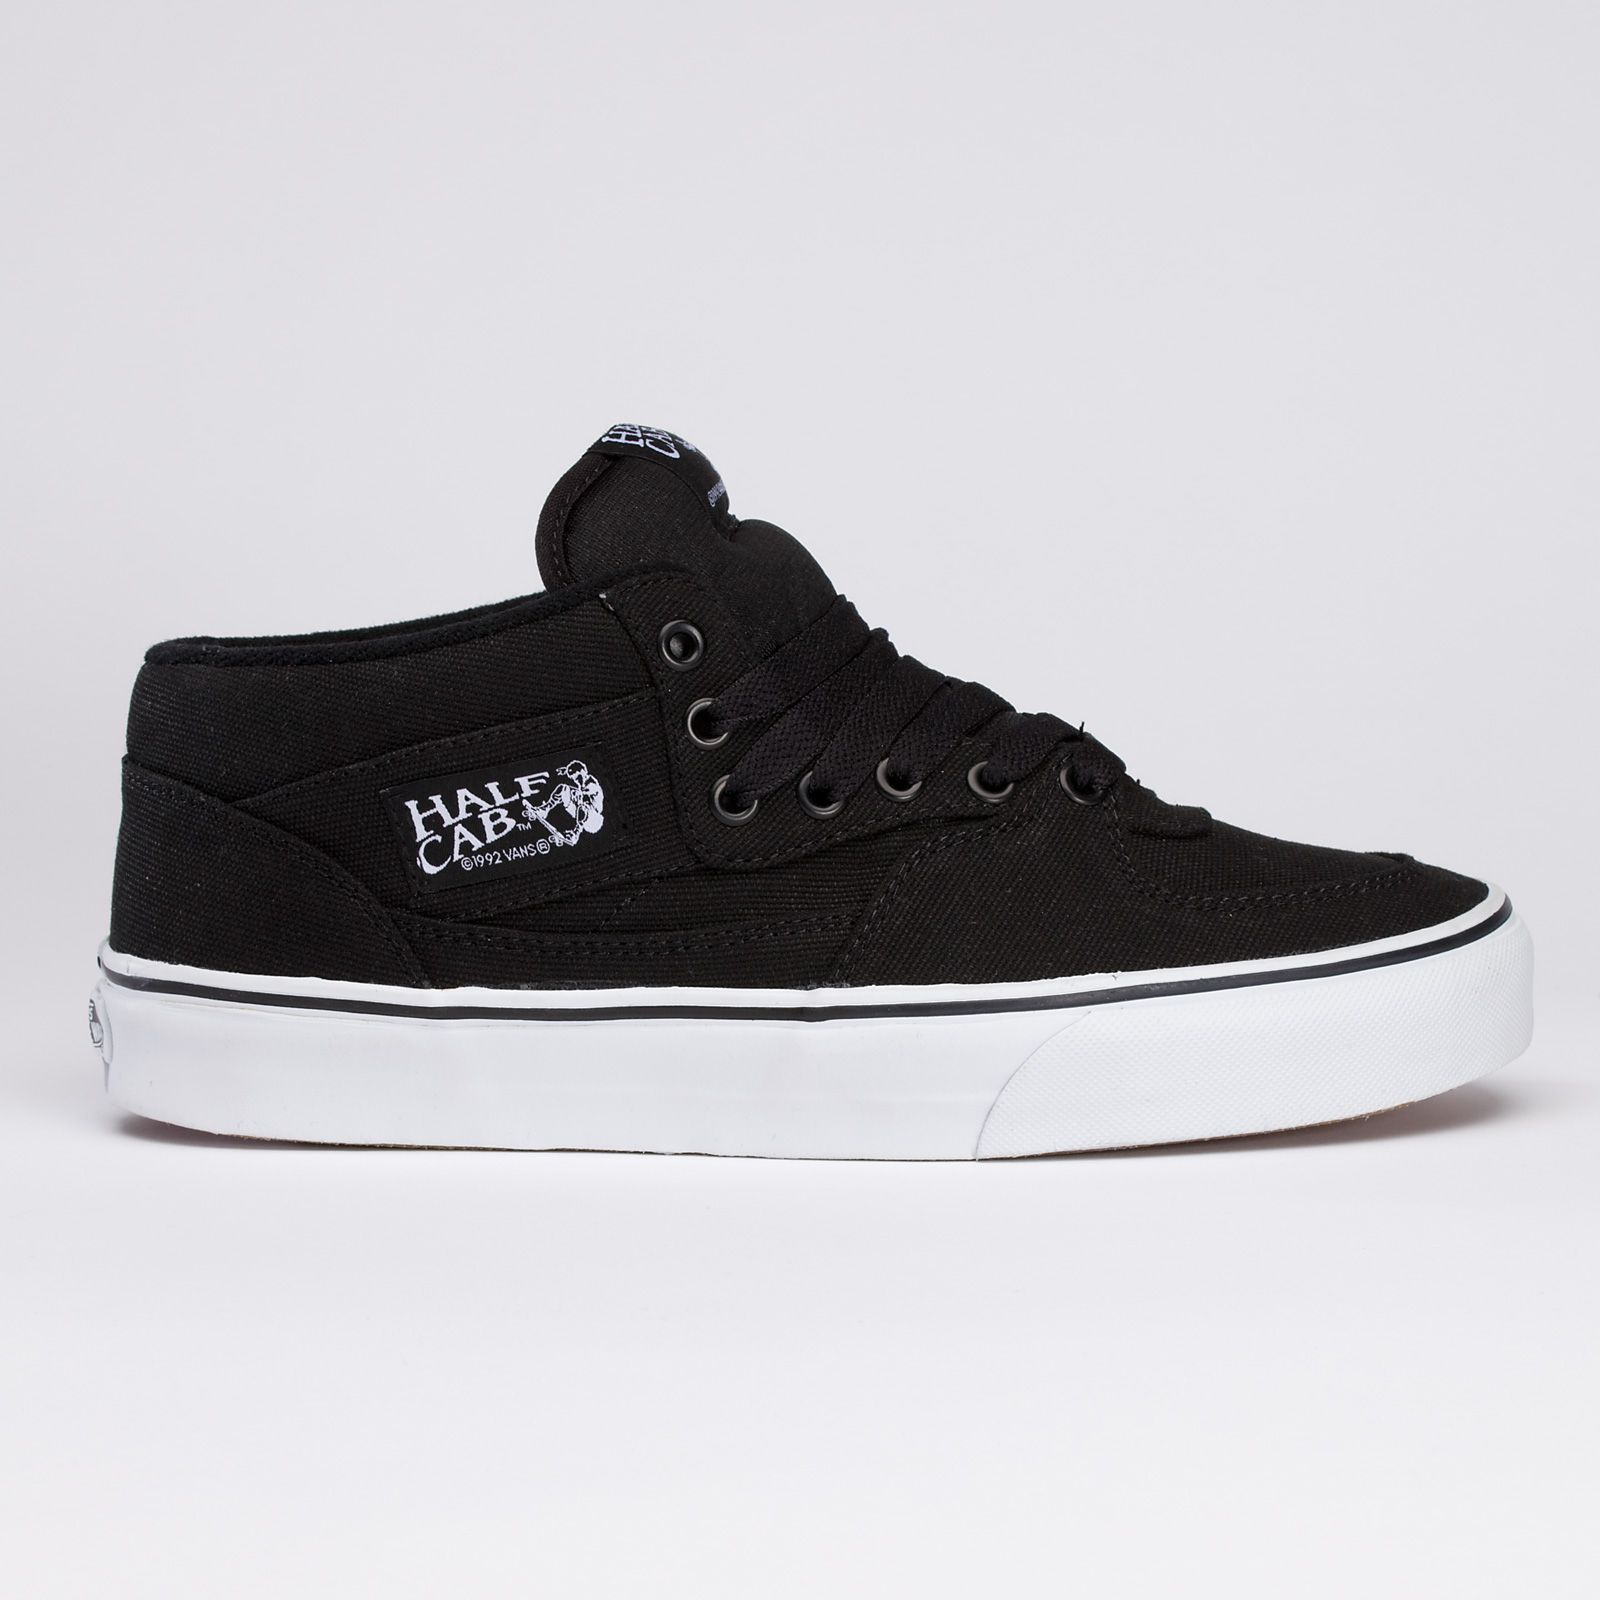 e4a2da34c8b387 vans half cab 14oz. black canvas